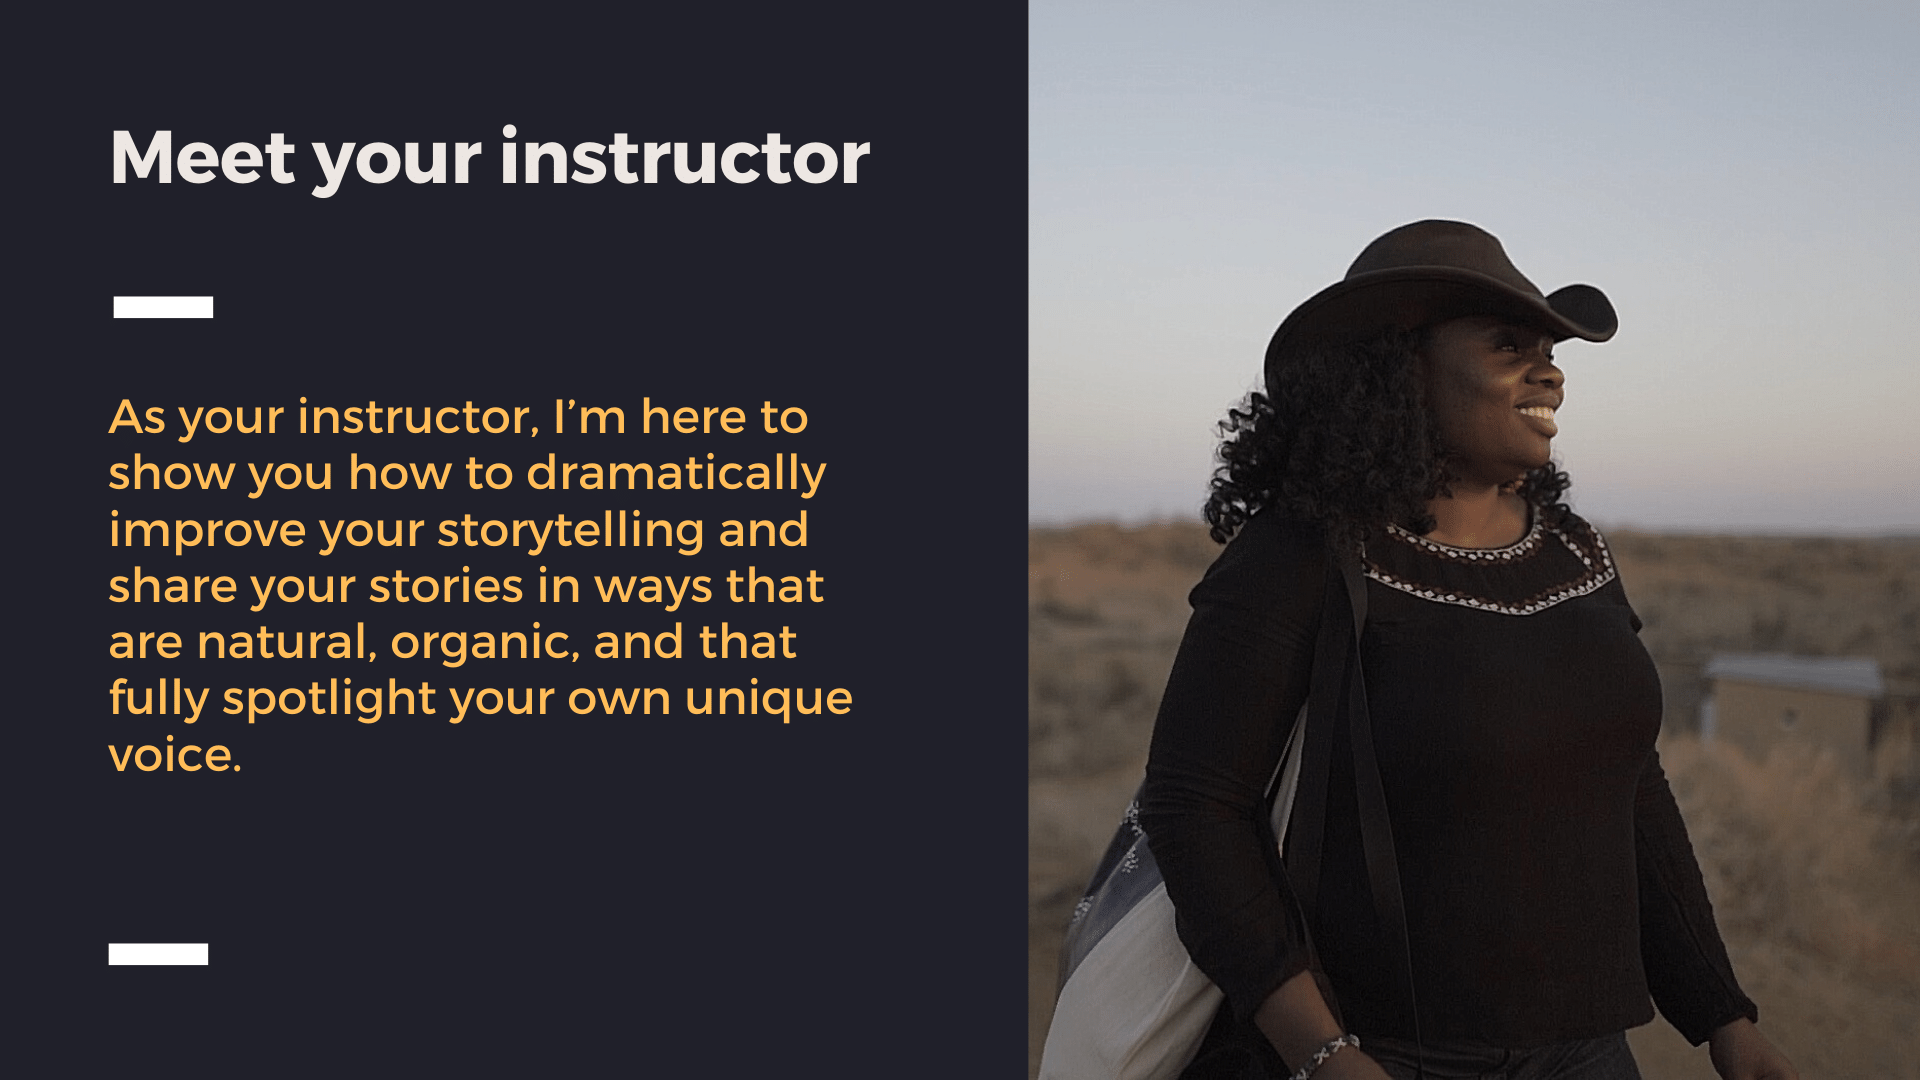 Meet your instructor - Lola Akinmade Åkerström